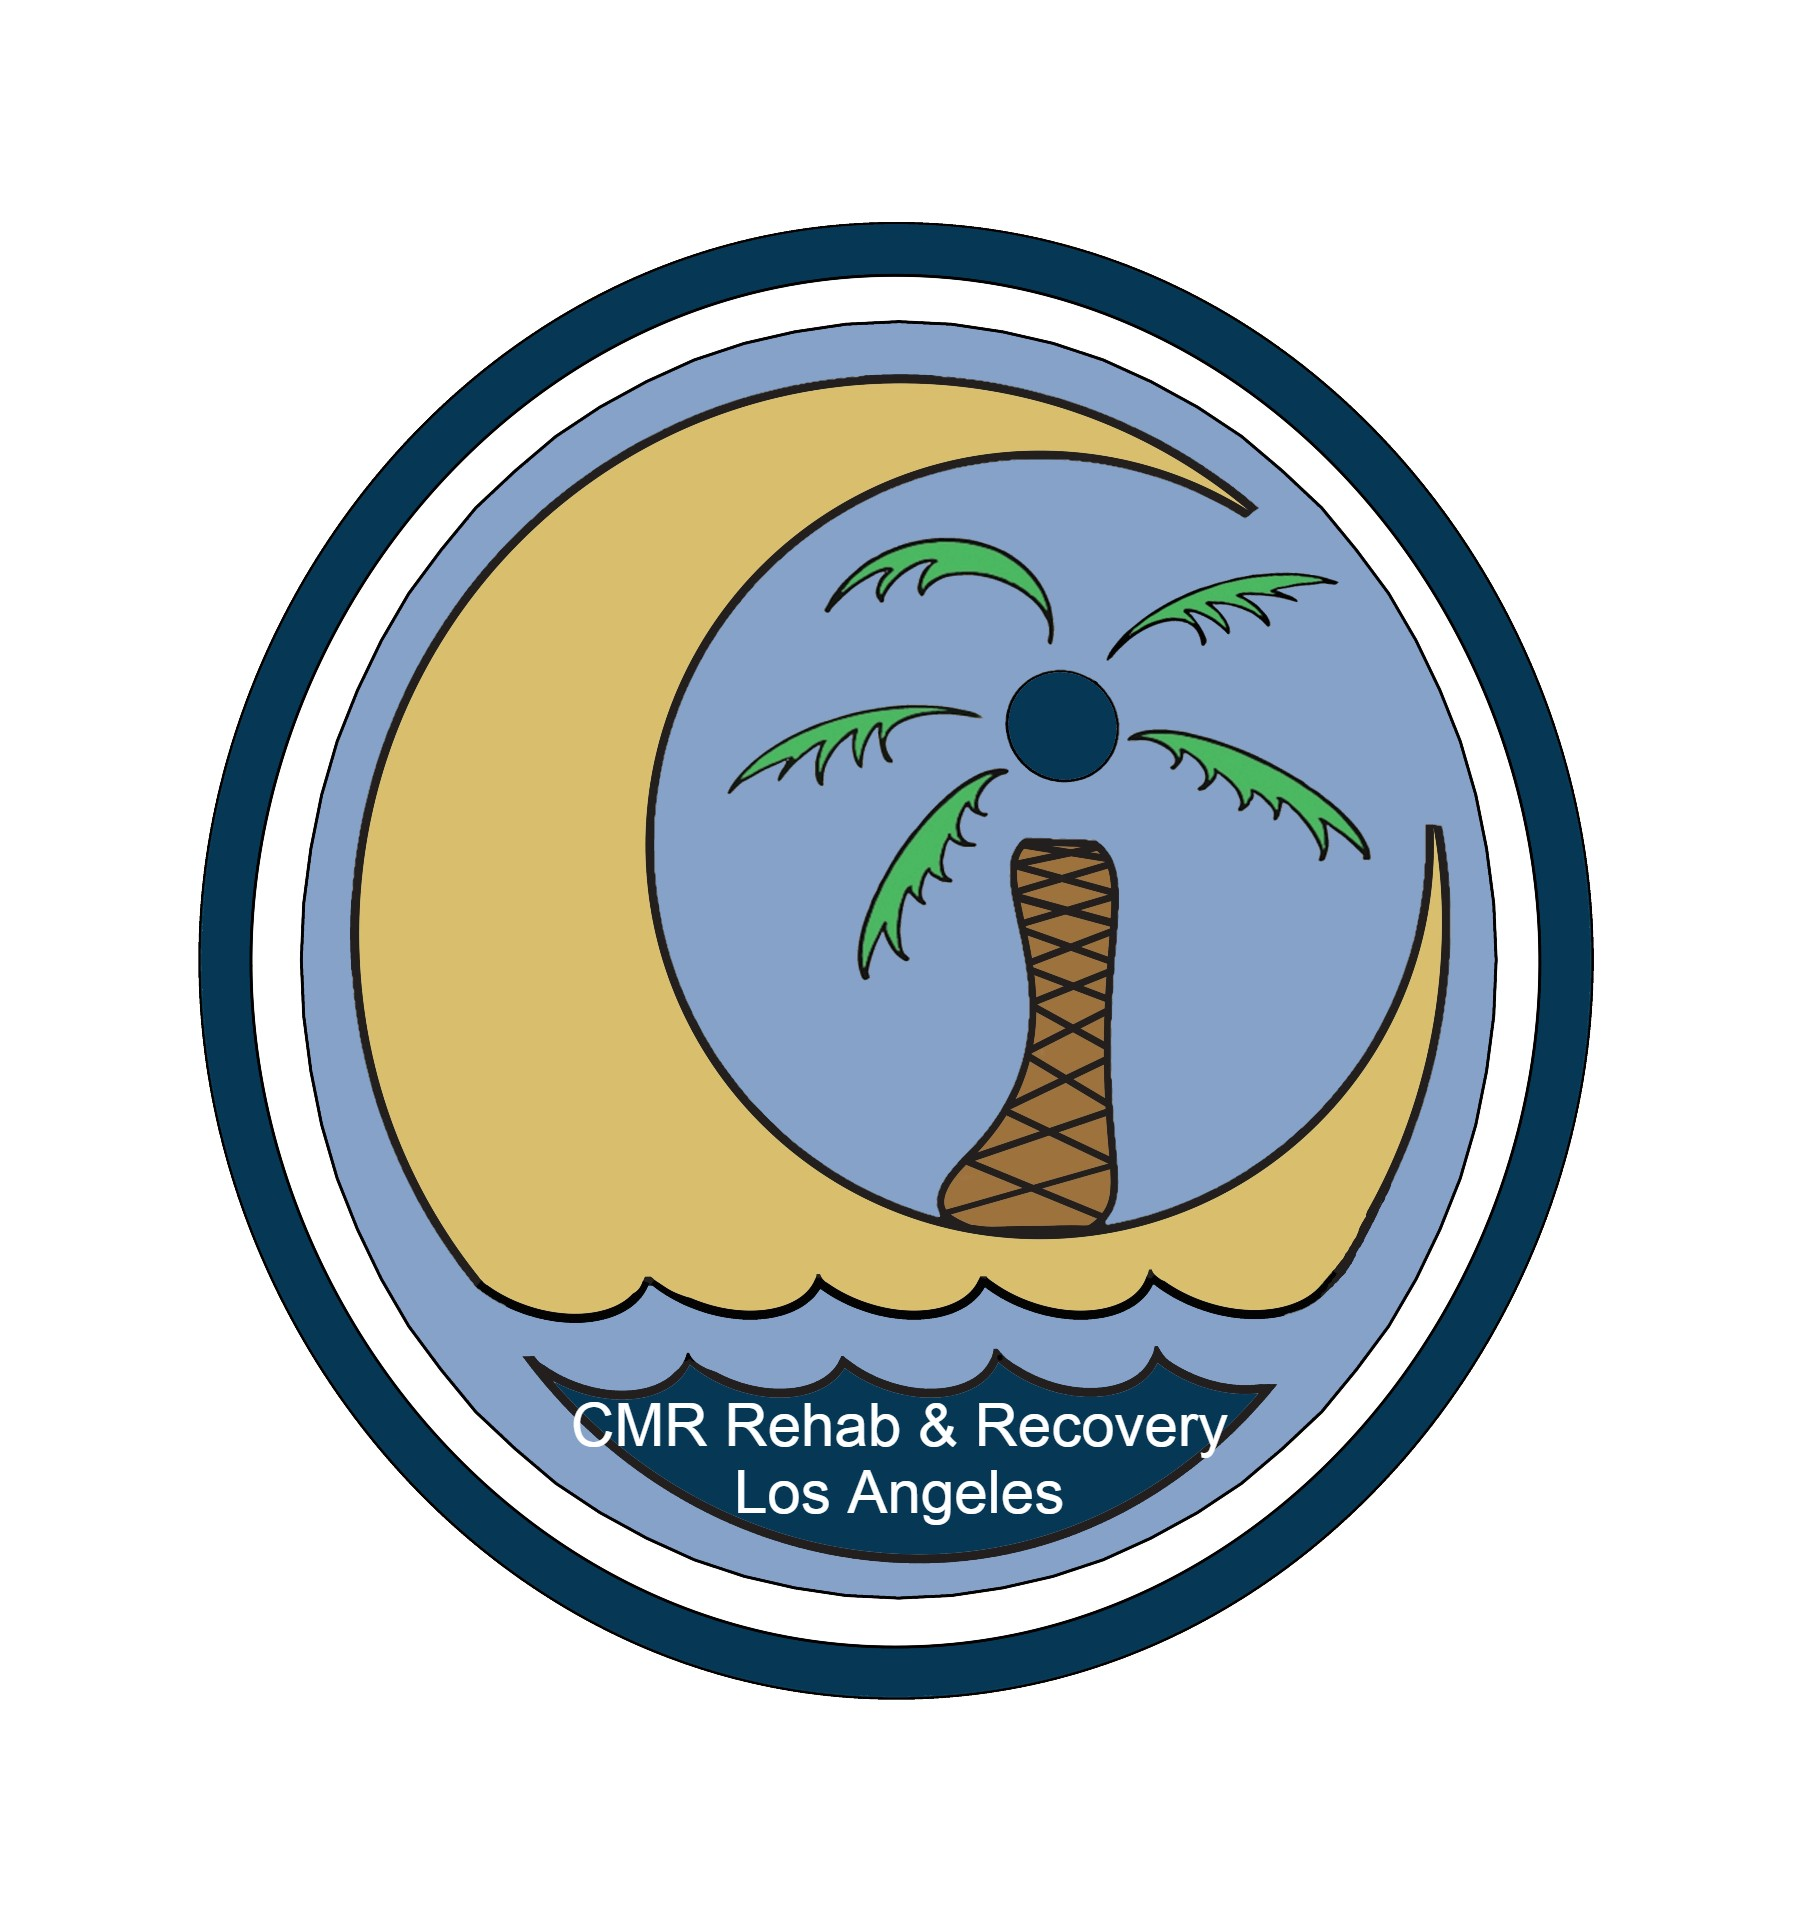 CMR Rehab & Recovery of Los Angeles Outlines What Makes Them Unique